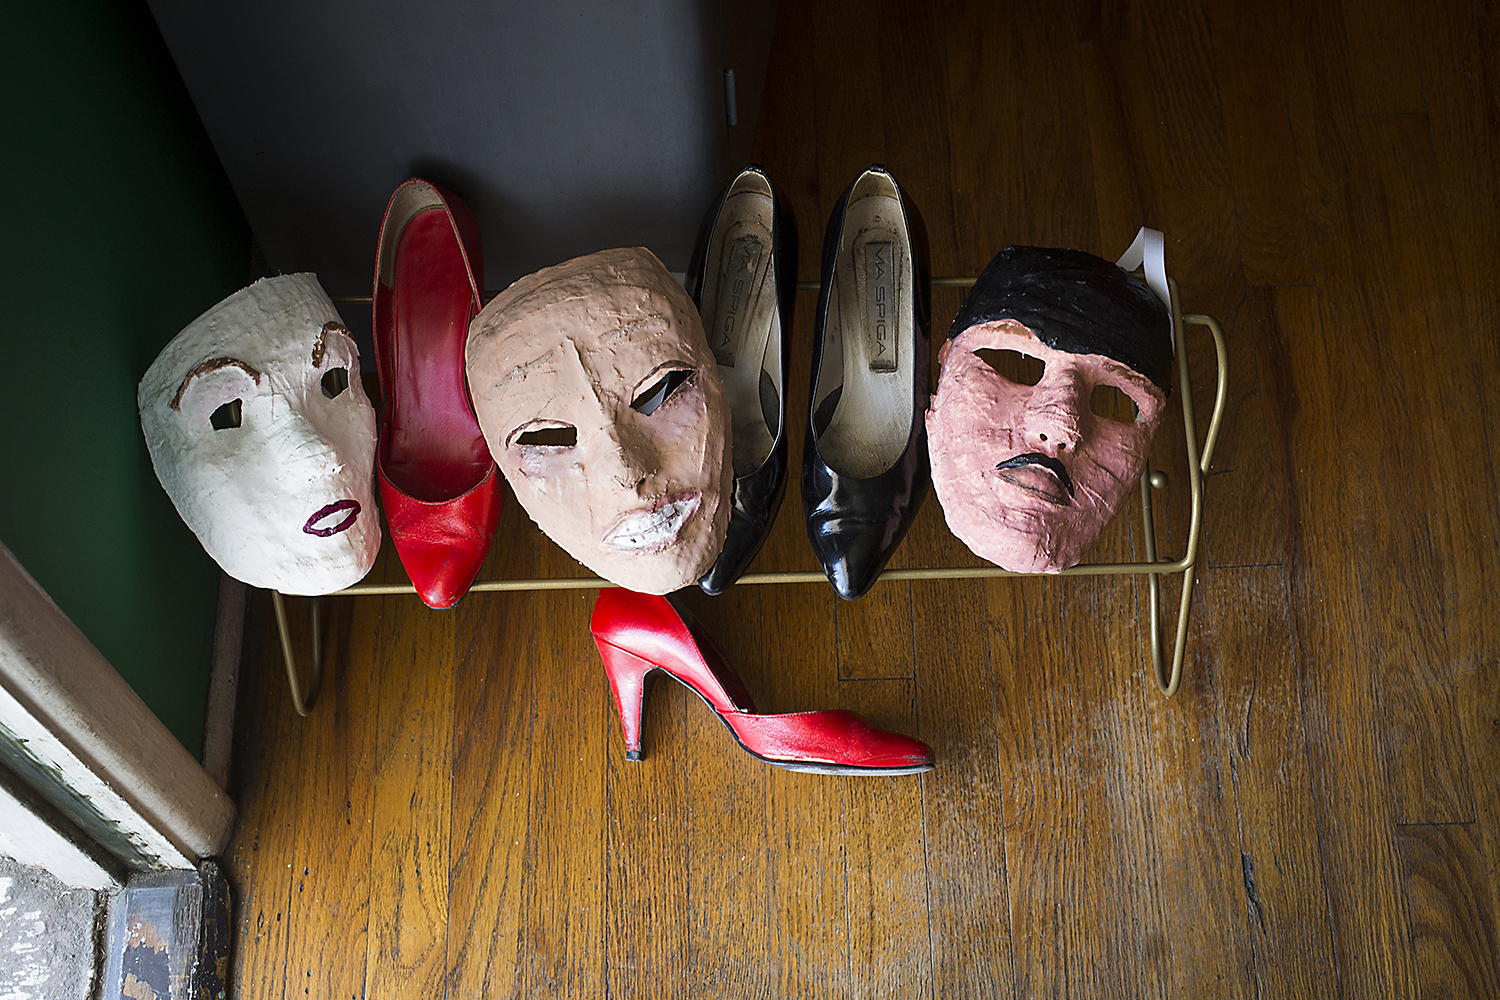 Leave Your Masks at the Door